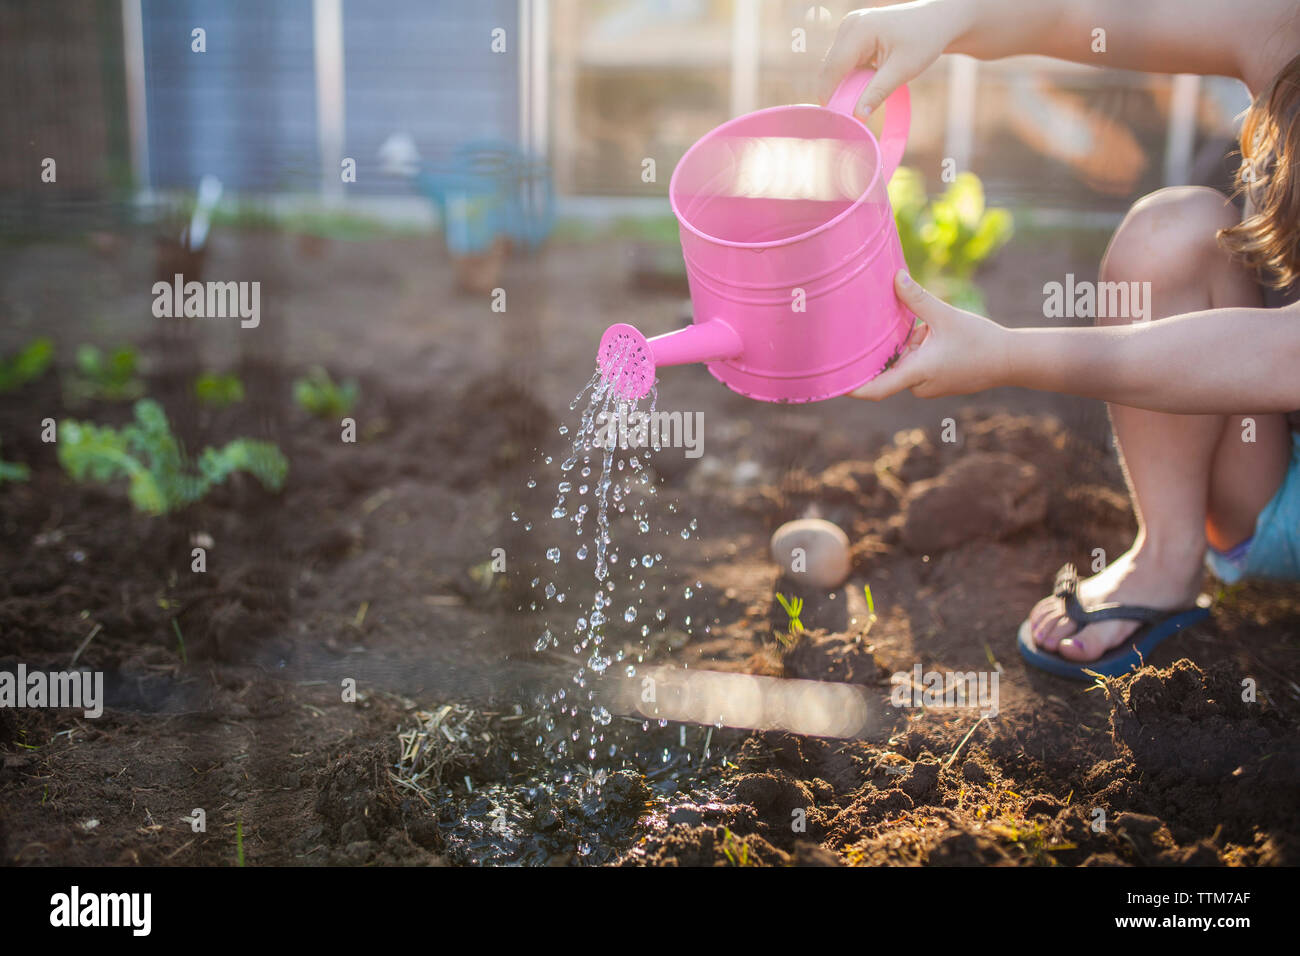 Midsection of girl watering seedling in backyard - Stock Image